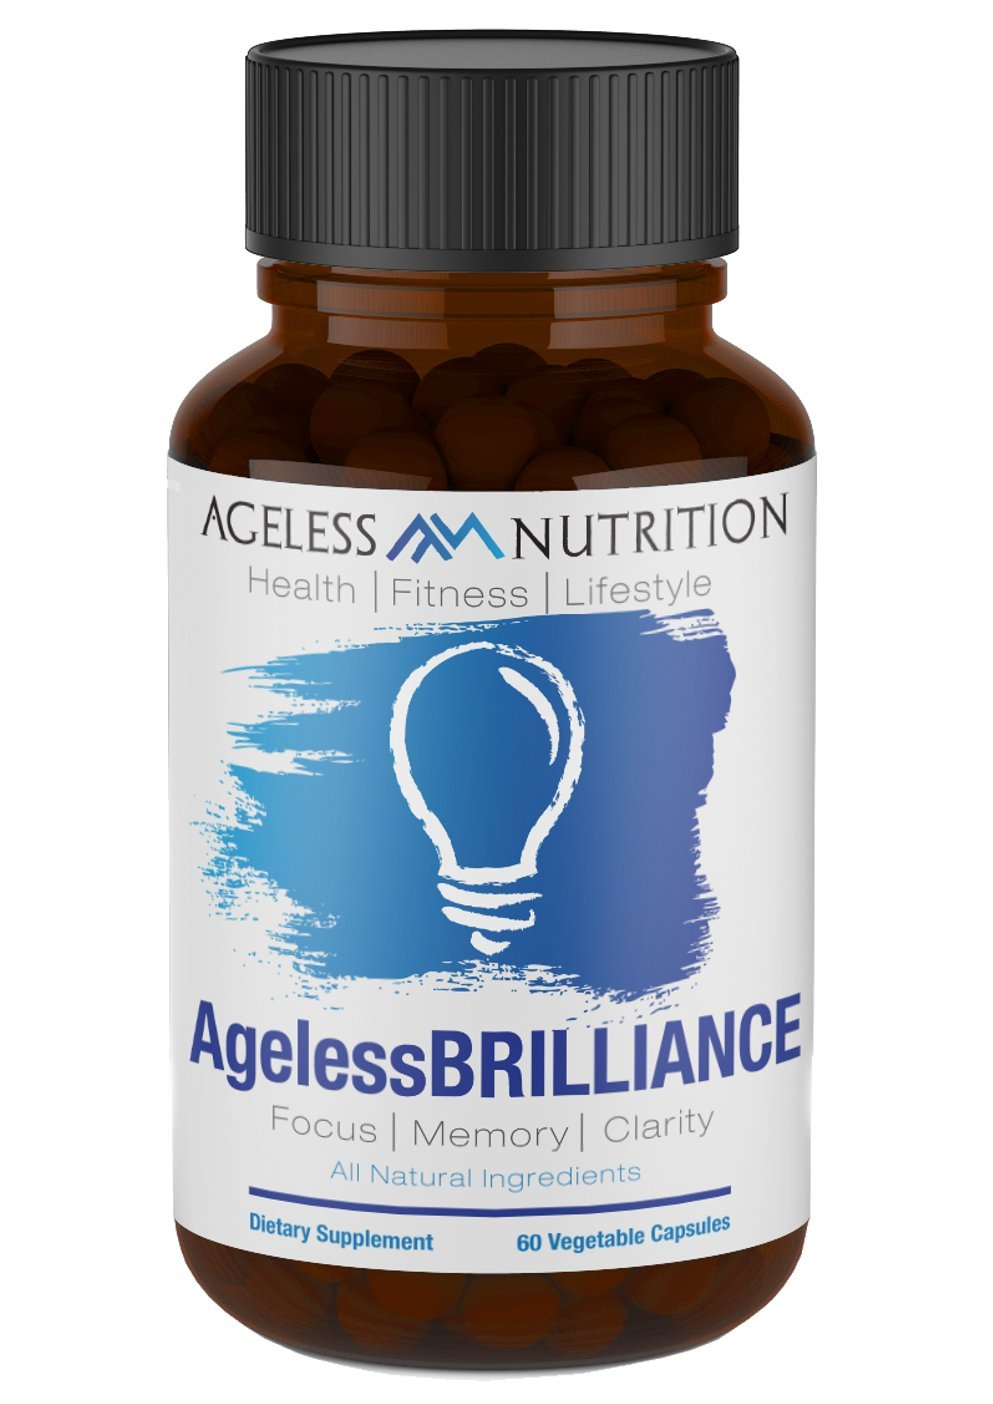 AgelessBRILLIANCE - Premium Brain Support Supplement - Mental Health Formula for Improved Focus, Memory, and Clarity - All Natural Nootropic - DMAE, Ginkgo Biloba, Bacopa Monnieri 60 Veggie Capsules by Ageless Nutrition